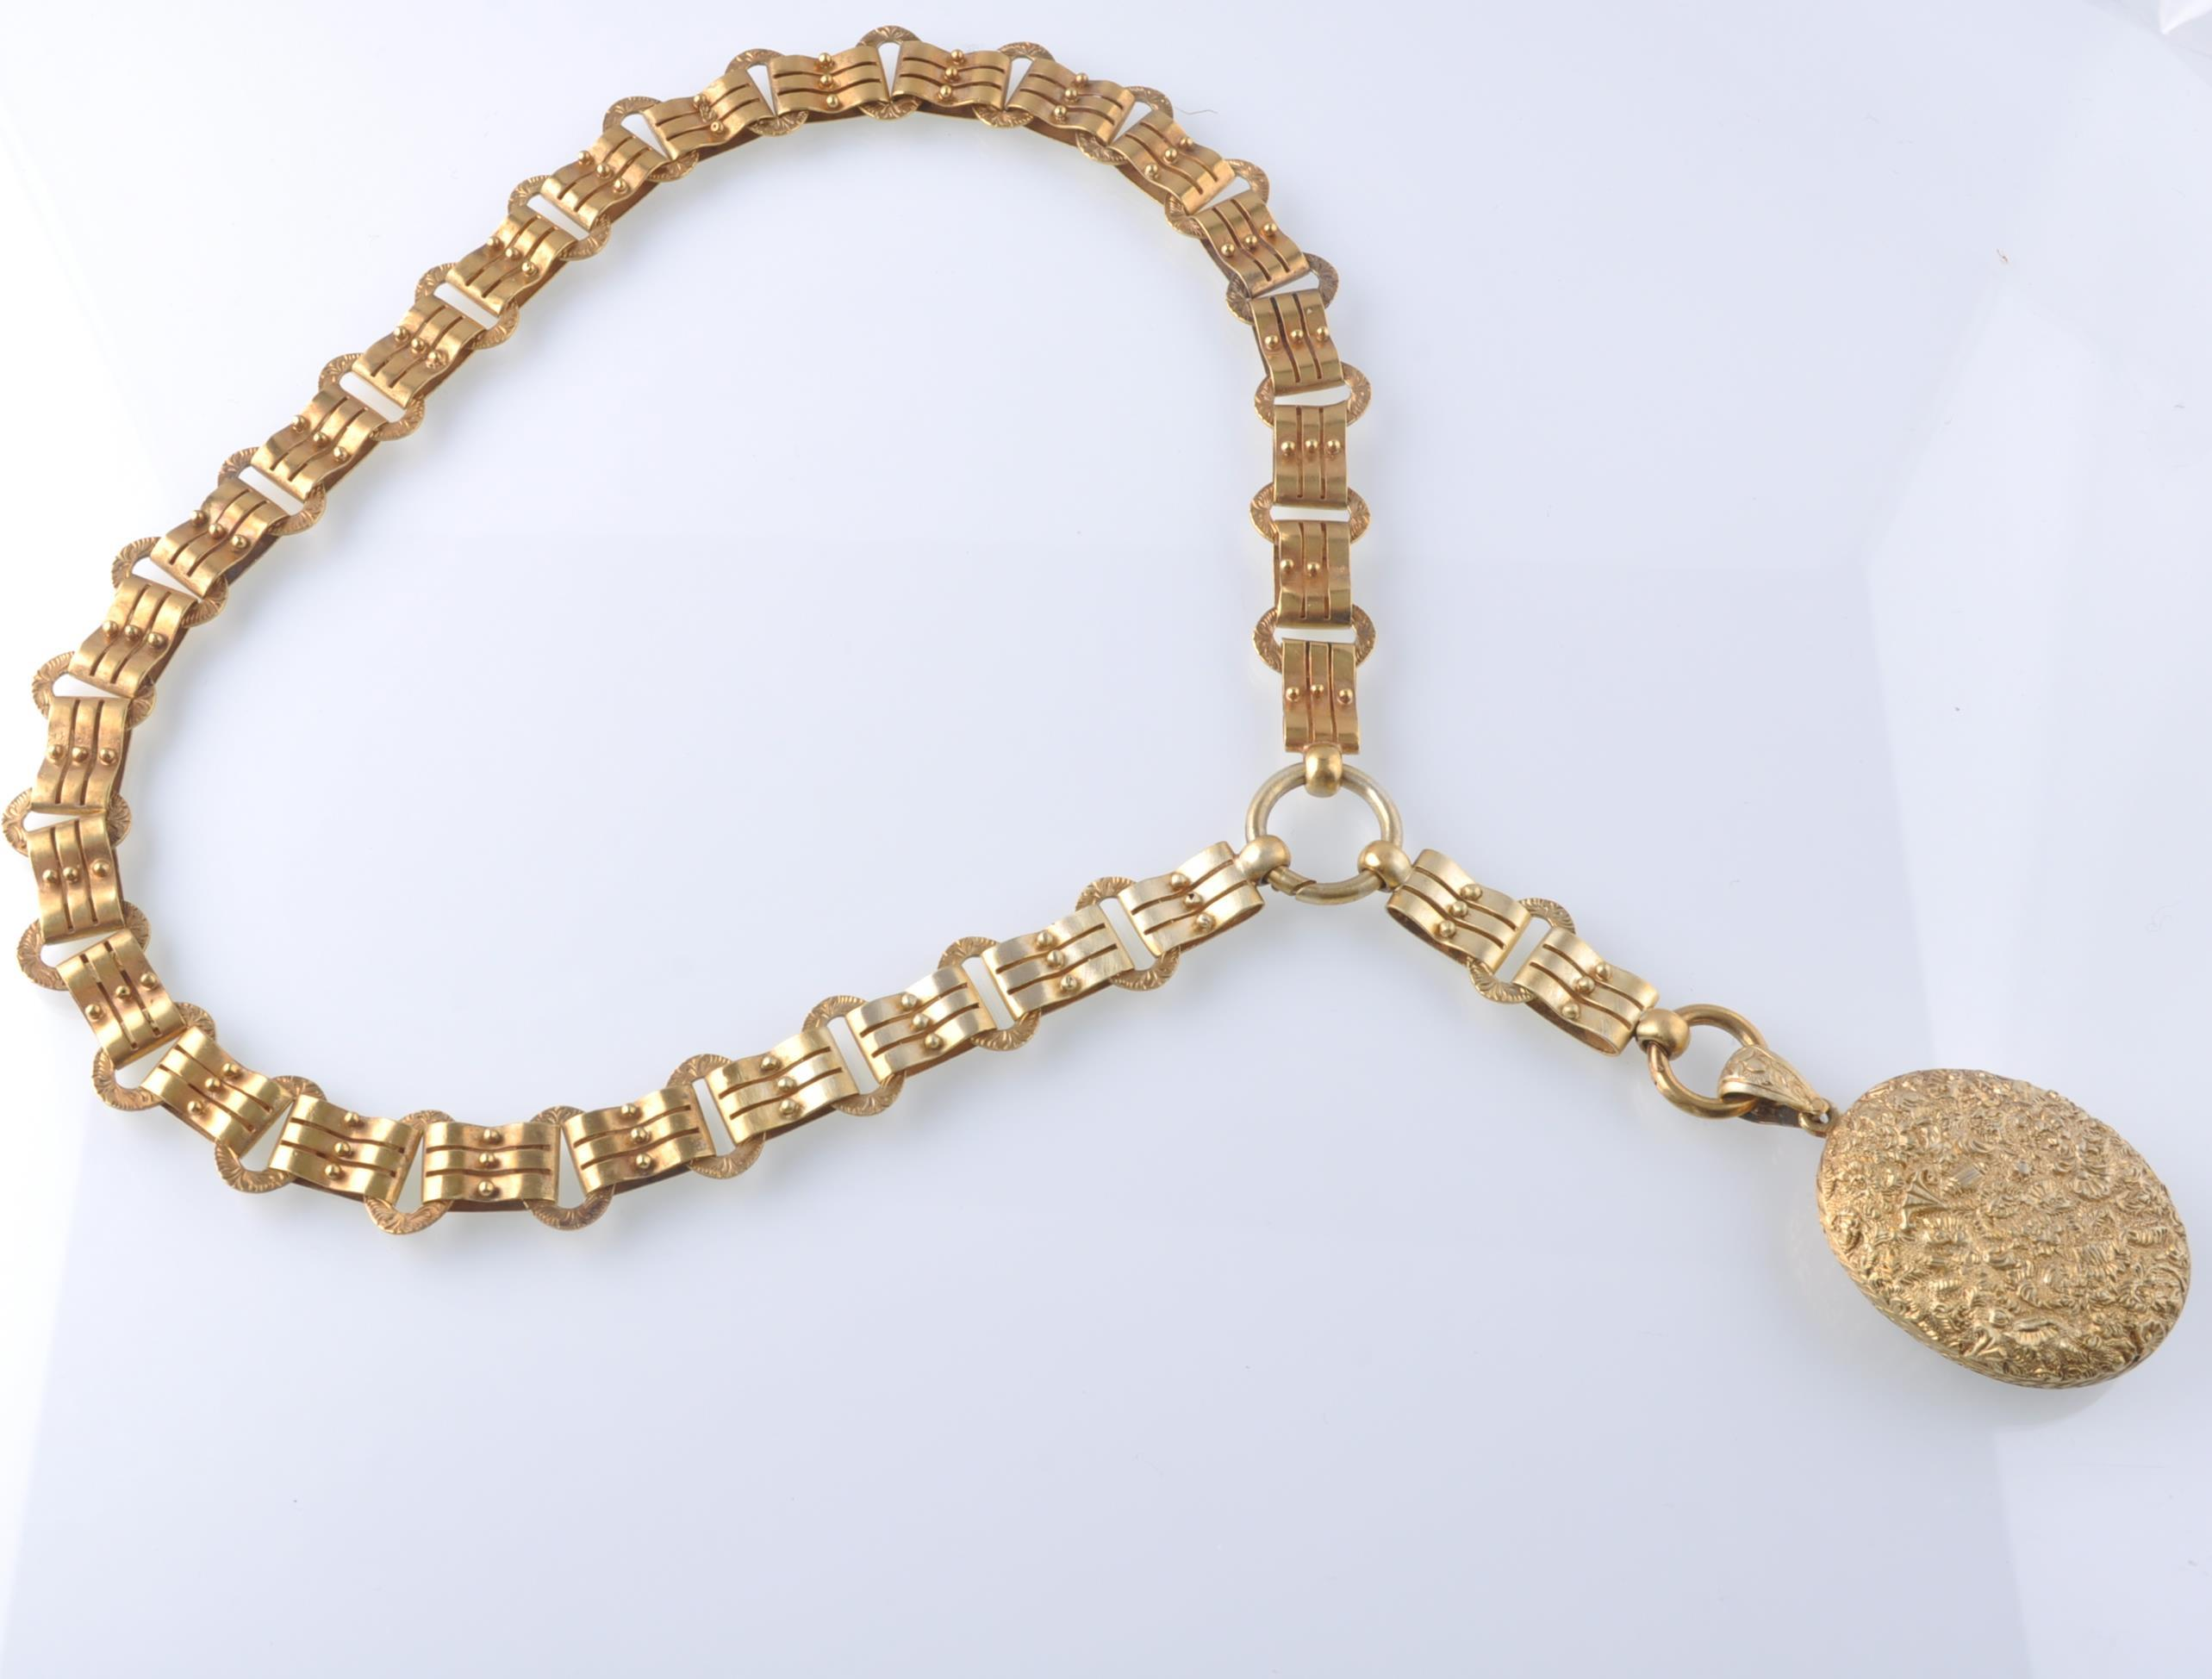 A 19TH CENTURY VICTORIAN PENDANT LOCKET ON CHAIN - Image 2 of 9